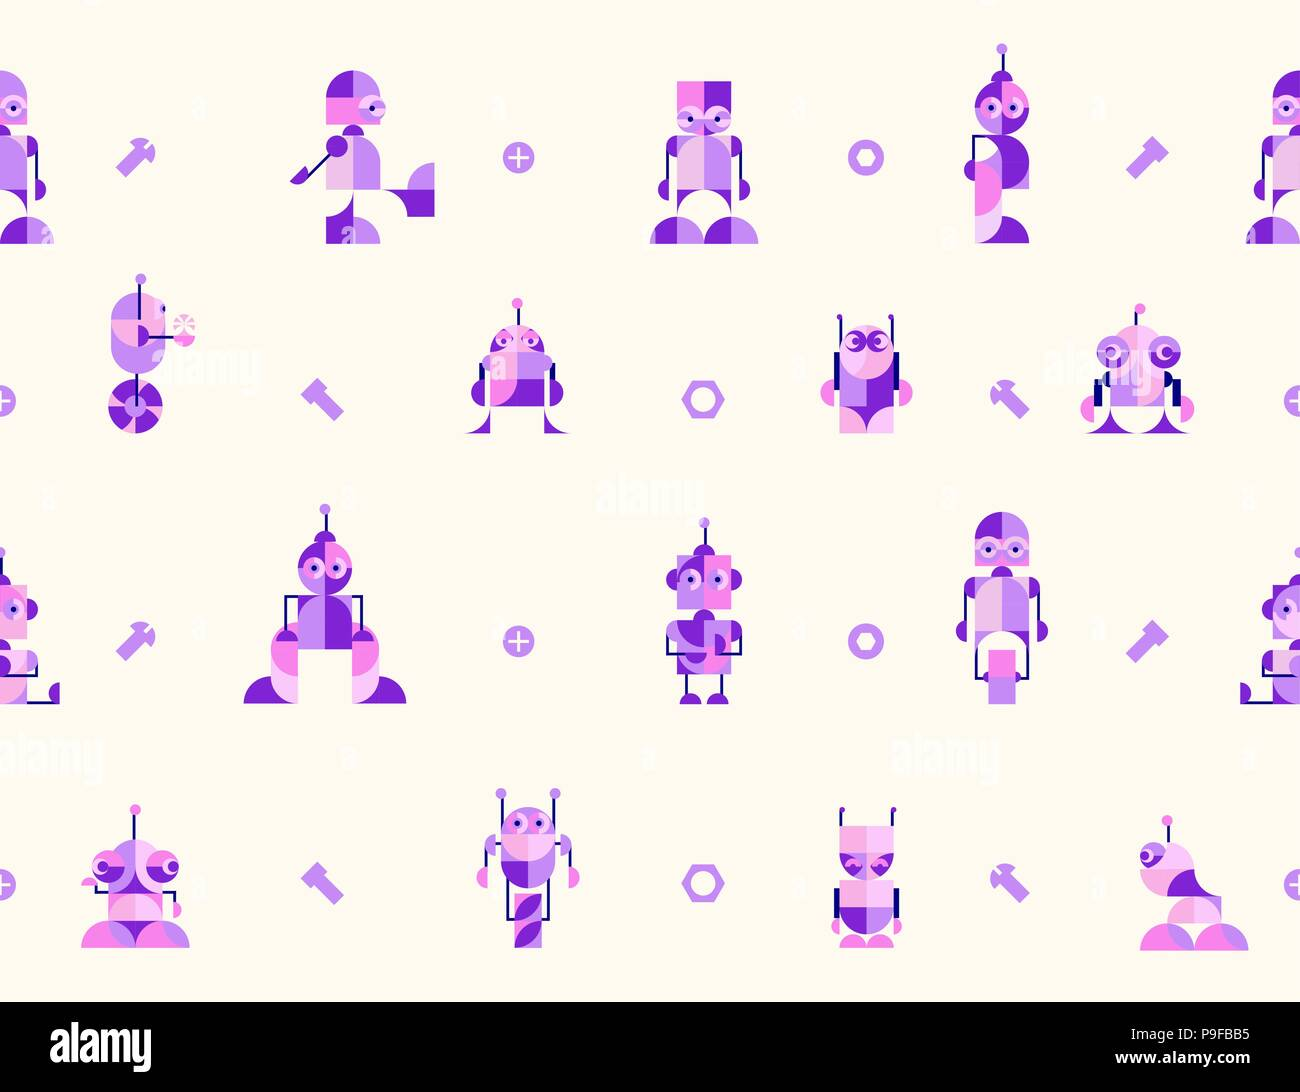 Nursery Childish Seamless Pattern Background with robots. Decorativ Style Trendy Textile, Wallpaper, Wrapping Paper, Kids Apparel Design. Stock Vector